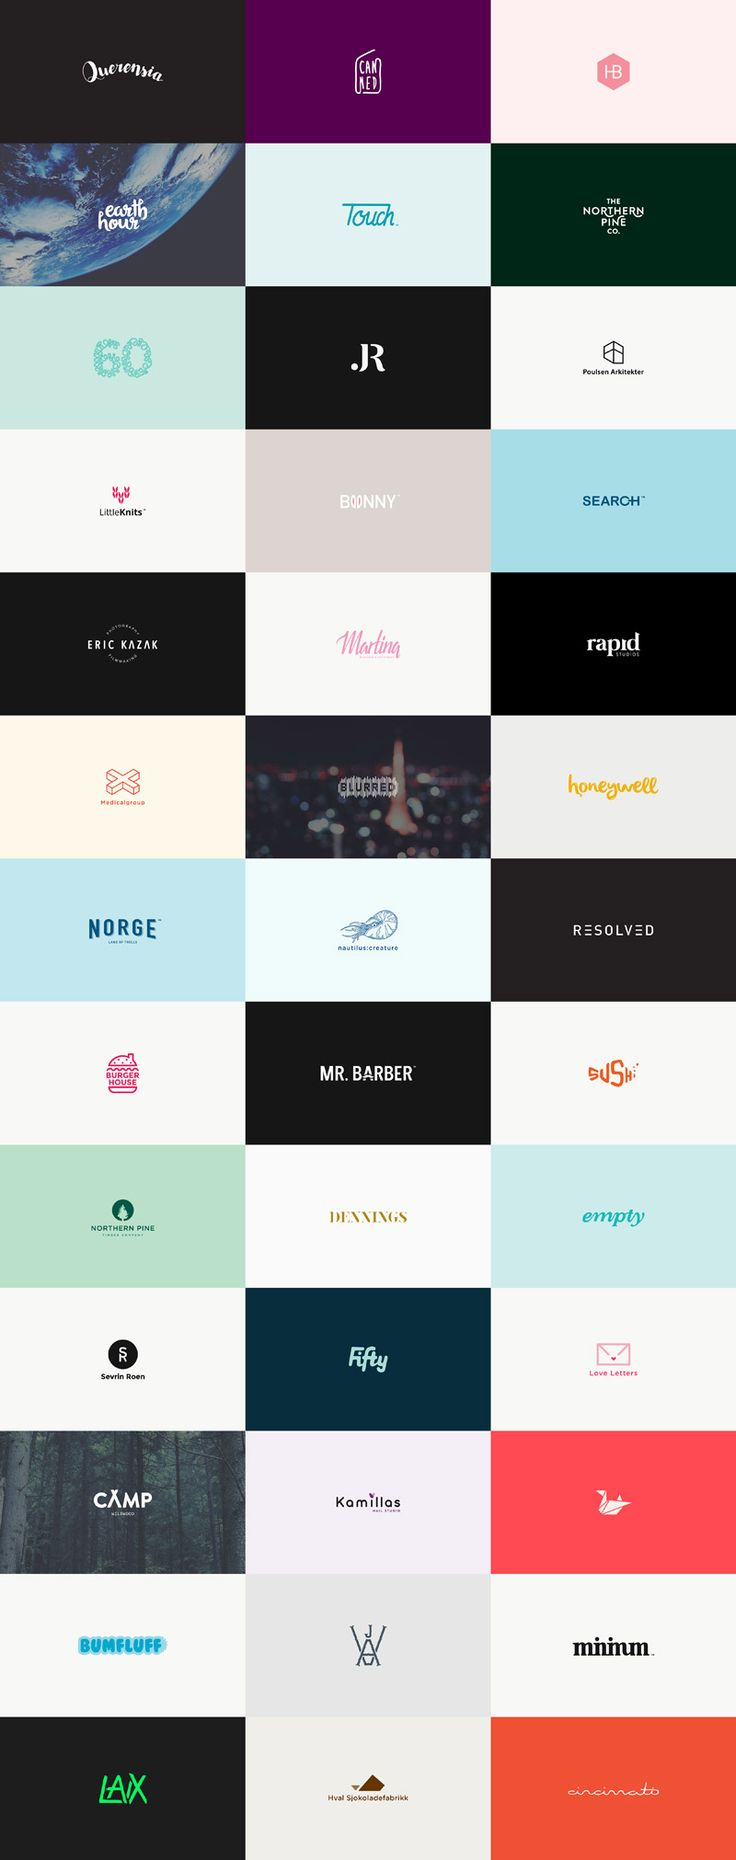 60 logos in 60 days by Karoline Tynes, a freelance graphic designer from Oslo, Norway. The collection includes diverse typography as well as illustrative and graphic work.